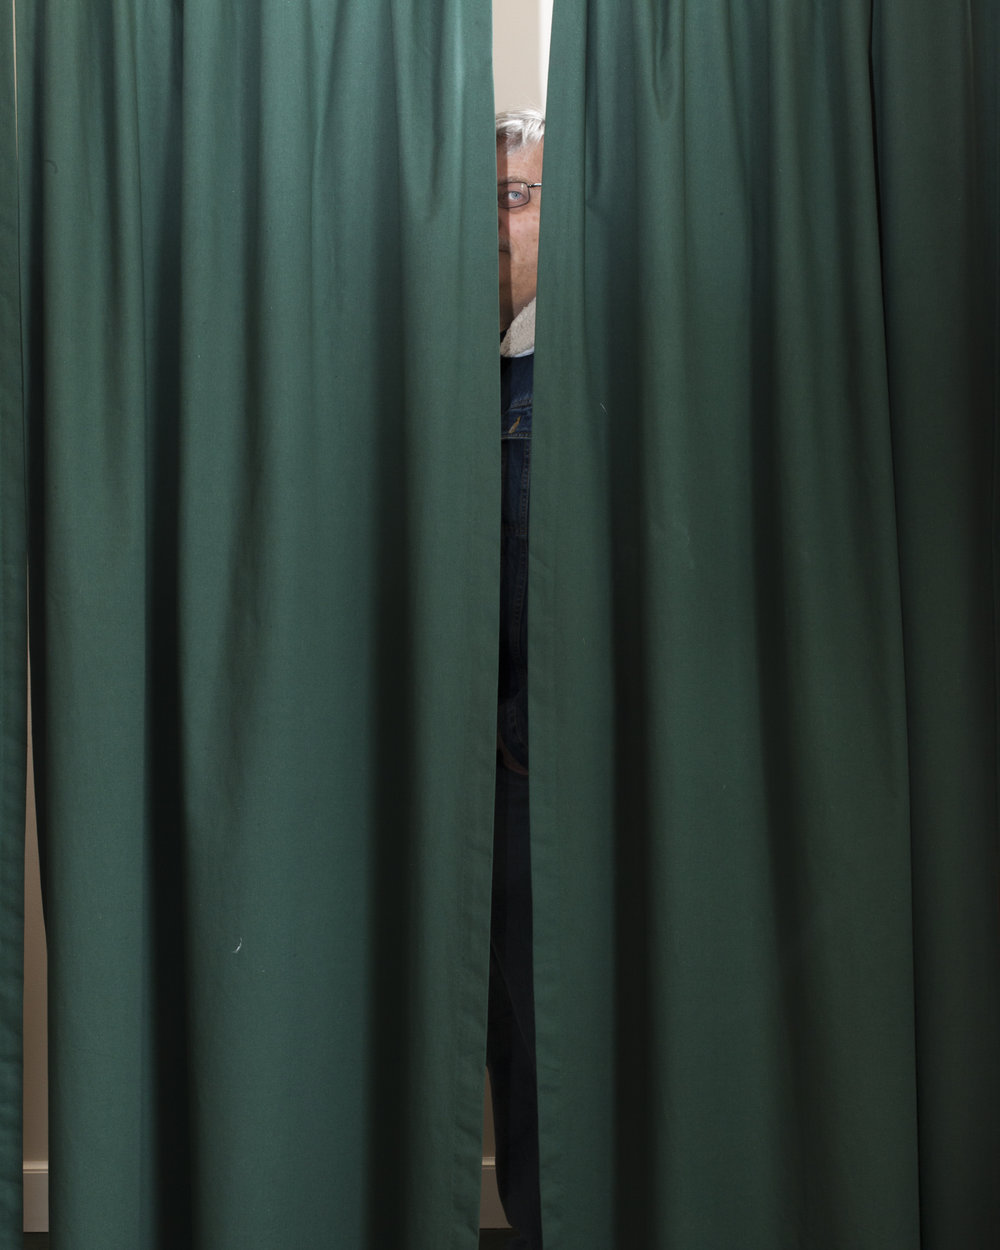 Dad Behind the Curtain, 2014